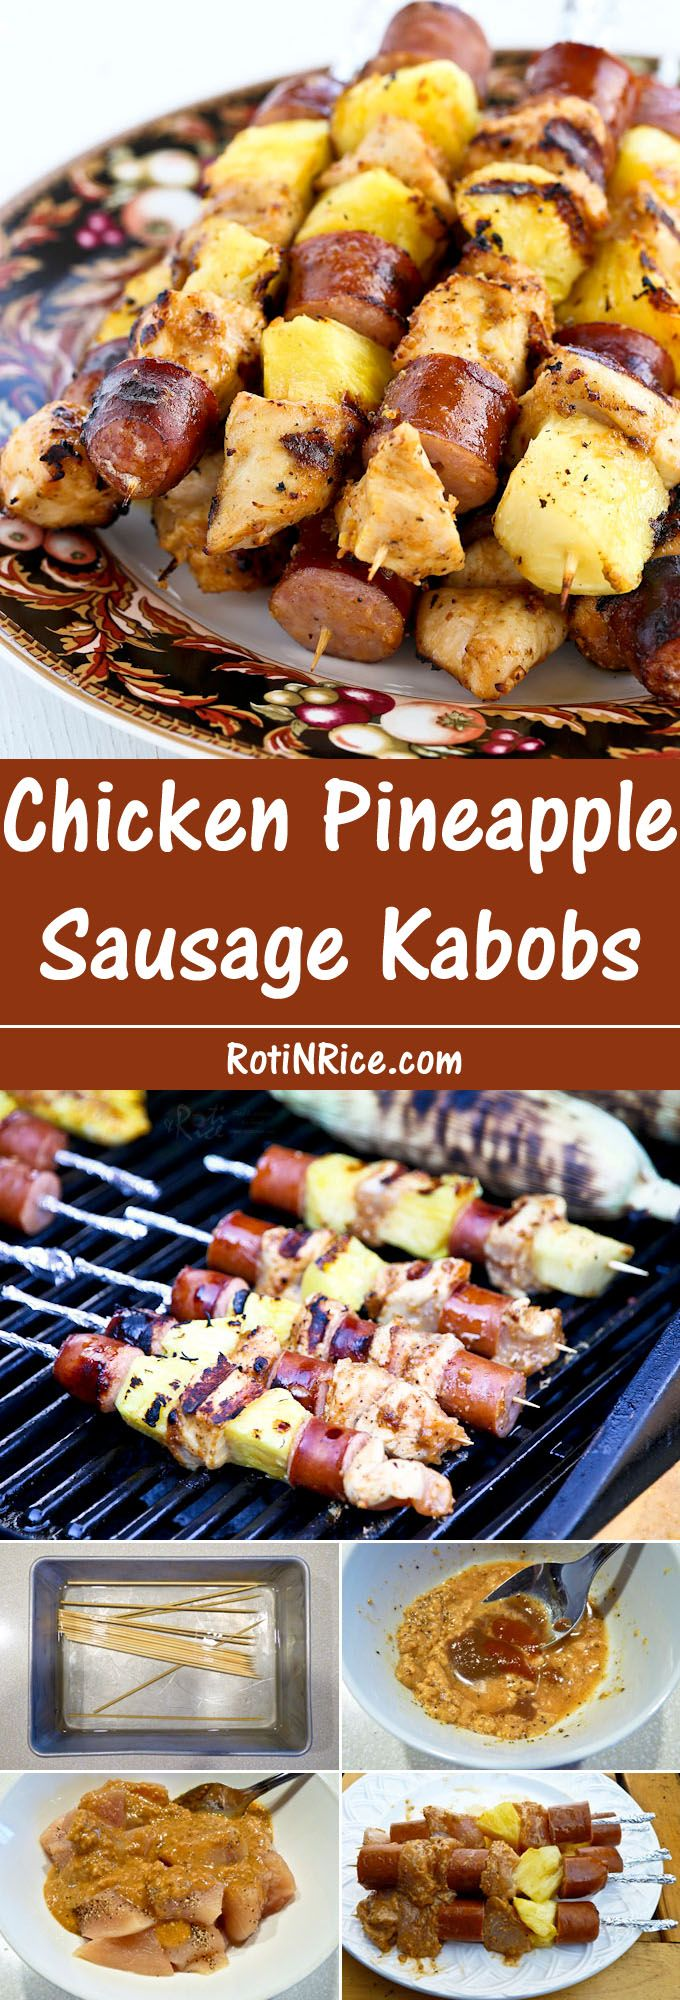 Fire up the grill for these colorful and tasty Chicken Pineapple Sausage Kabobs with a peanut butter hot sauce marinade. They are quick, easy, and delicious. | Food to gladden the heart at RotiNRice.com